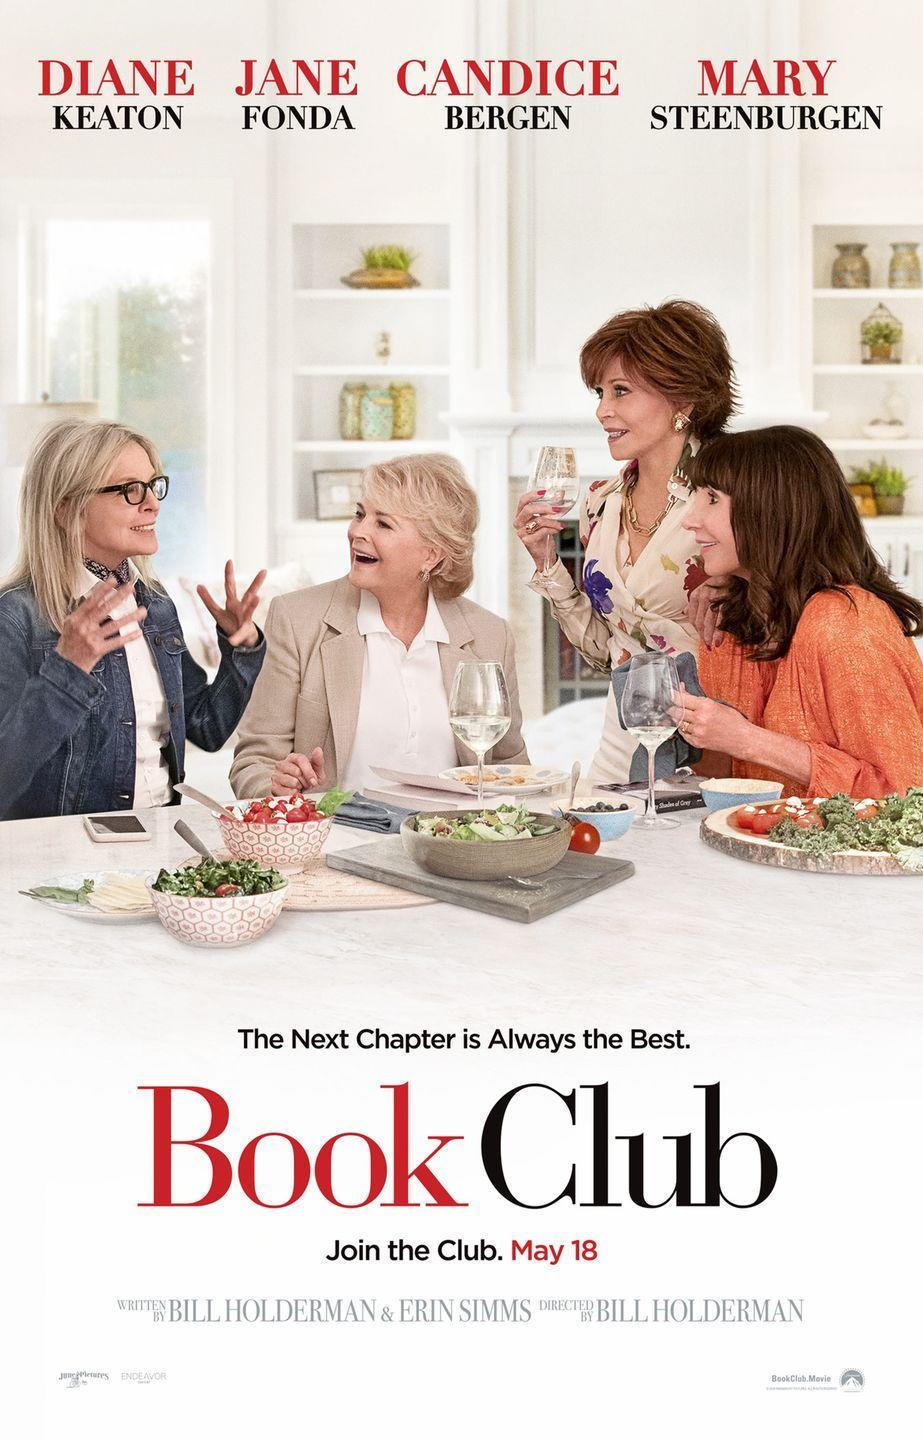 """<p><a class=""""link rapid-noclick-resp"""" href=""""https://www.amazon.com/Book-Club-Diane-Keaton/dp/B07CYTJWR2/?tag=syn-yahoo-20&ascsubtag=%5Bartid%7C10050.g.25810122%5Bsrc%7Cyahoo-us"""" rel=""""nofollow noopener"""" target=""""_blank"""" data-ylk=""""slk:STREAM NOW"""">STREAM NOW</a></p><p>Diane Keaton, Jane Fonda, Candice Bergen, and Mary Steenburgen tackle <em>50 Shades of Grey </em>with knee-slapping results. </p>"""